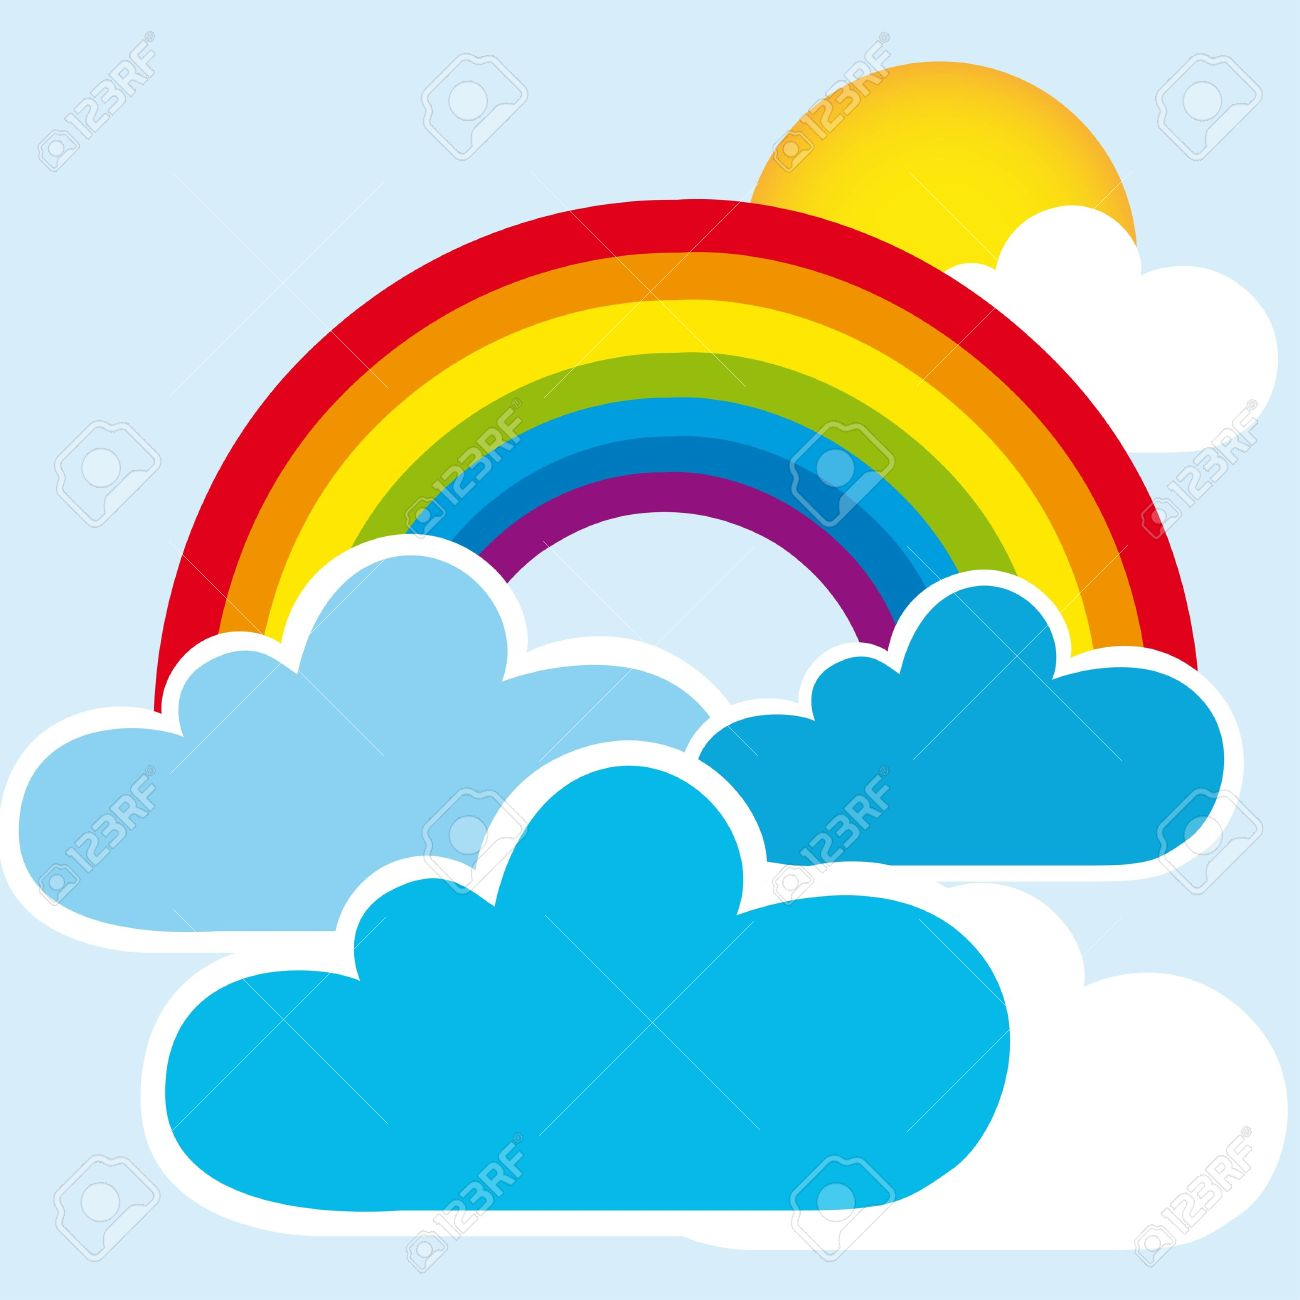 sun cloud rainbow clipart - Clipground